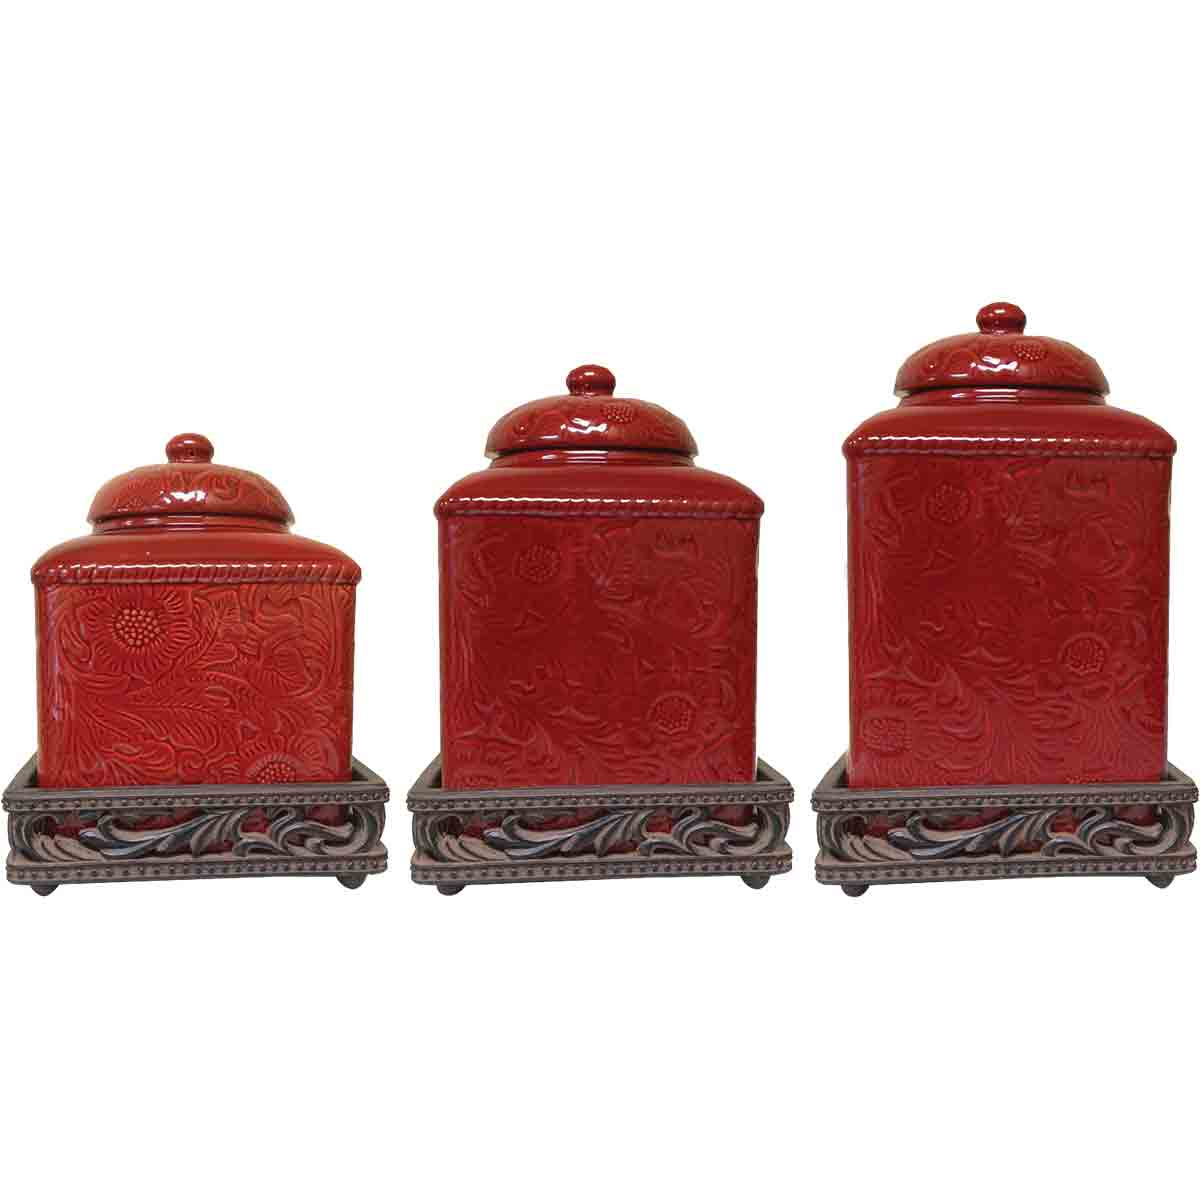 Savannah Red Canister Set with Base - OUT OF STOCK UNTIL 2/3/2021